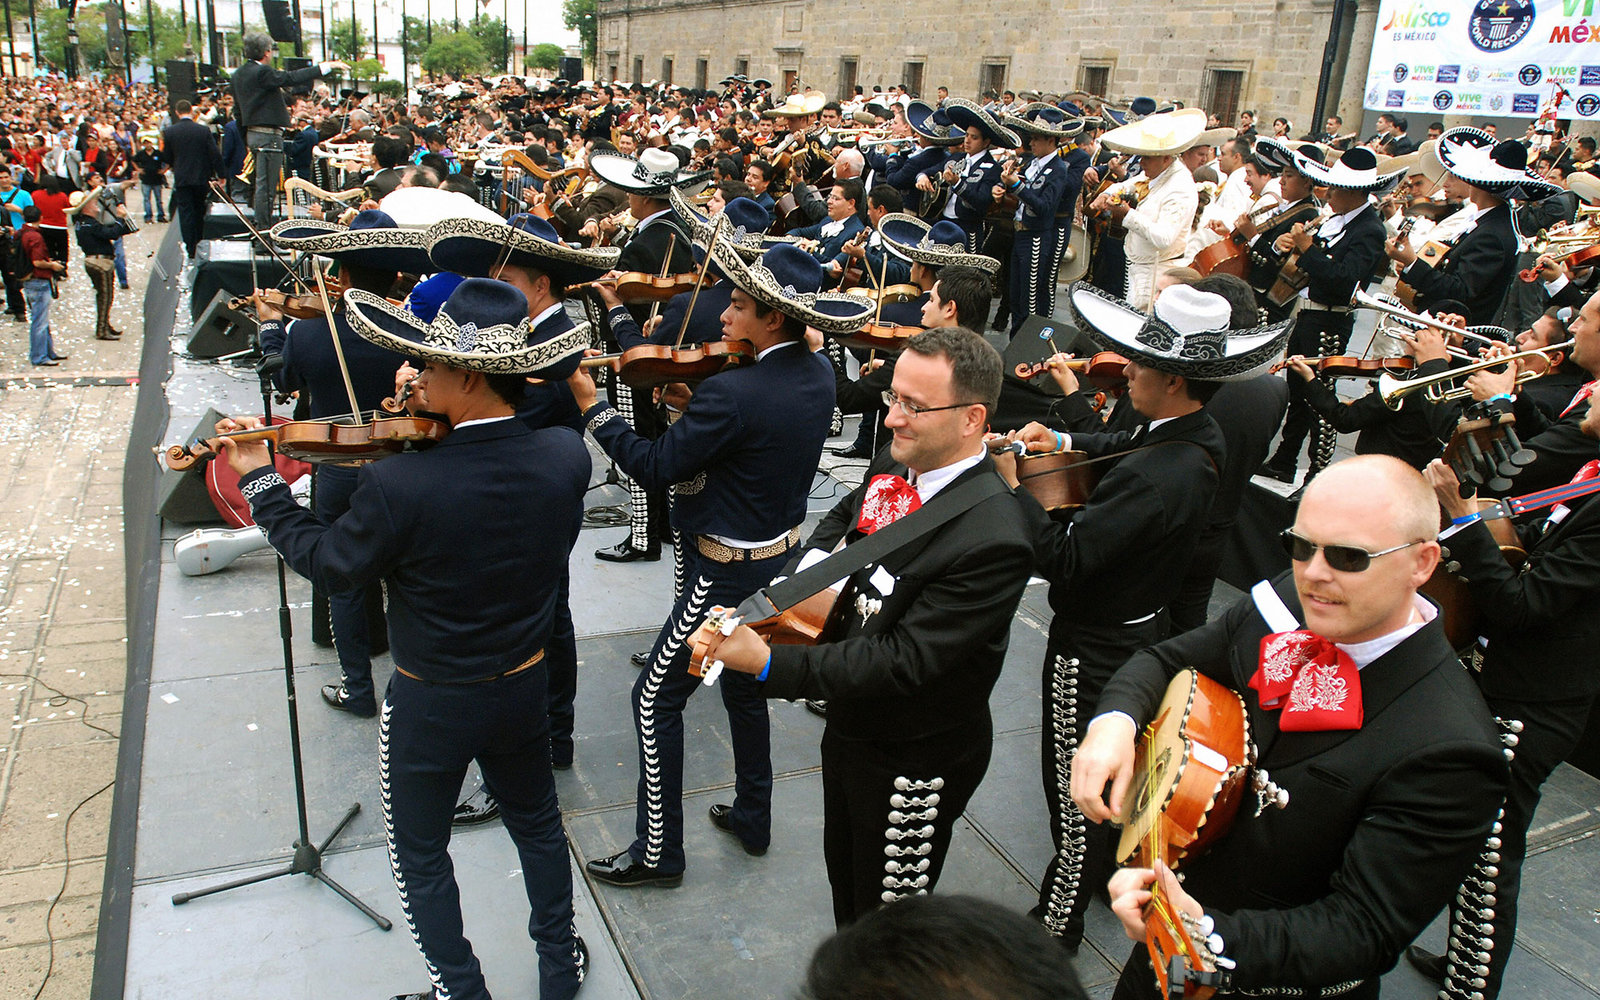 """View of part of the 549 """"Mariachis"""" who performed to break the Guinness World Record of """"Mariachis"""" playing at the same time on August 30, 2009 in Guadalajara, Mexico in the framework of the Mariachi's International Festival.  AFP PHOTO/Ivan Garcia (Photo"""